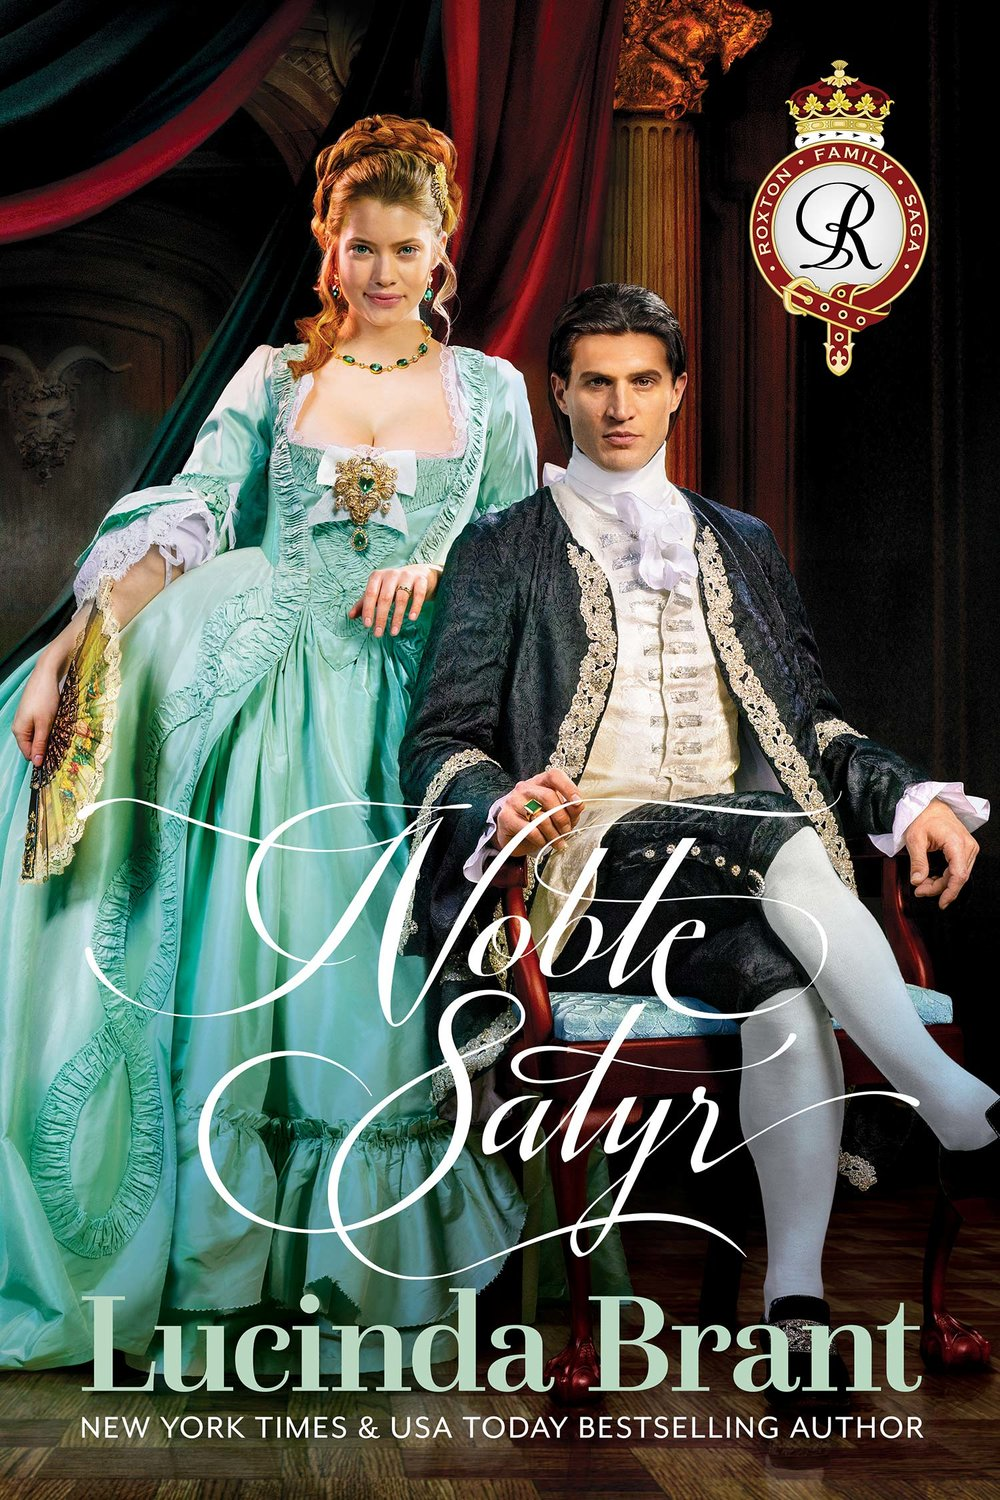 Noble Satyr—A Georgian Historical Romance by Lucinda Brant